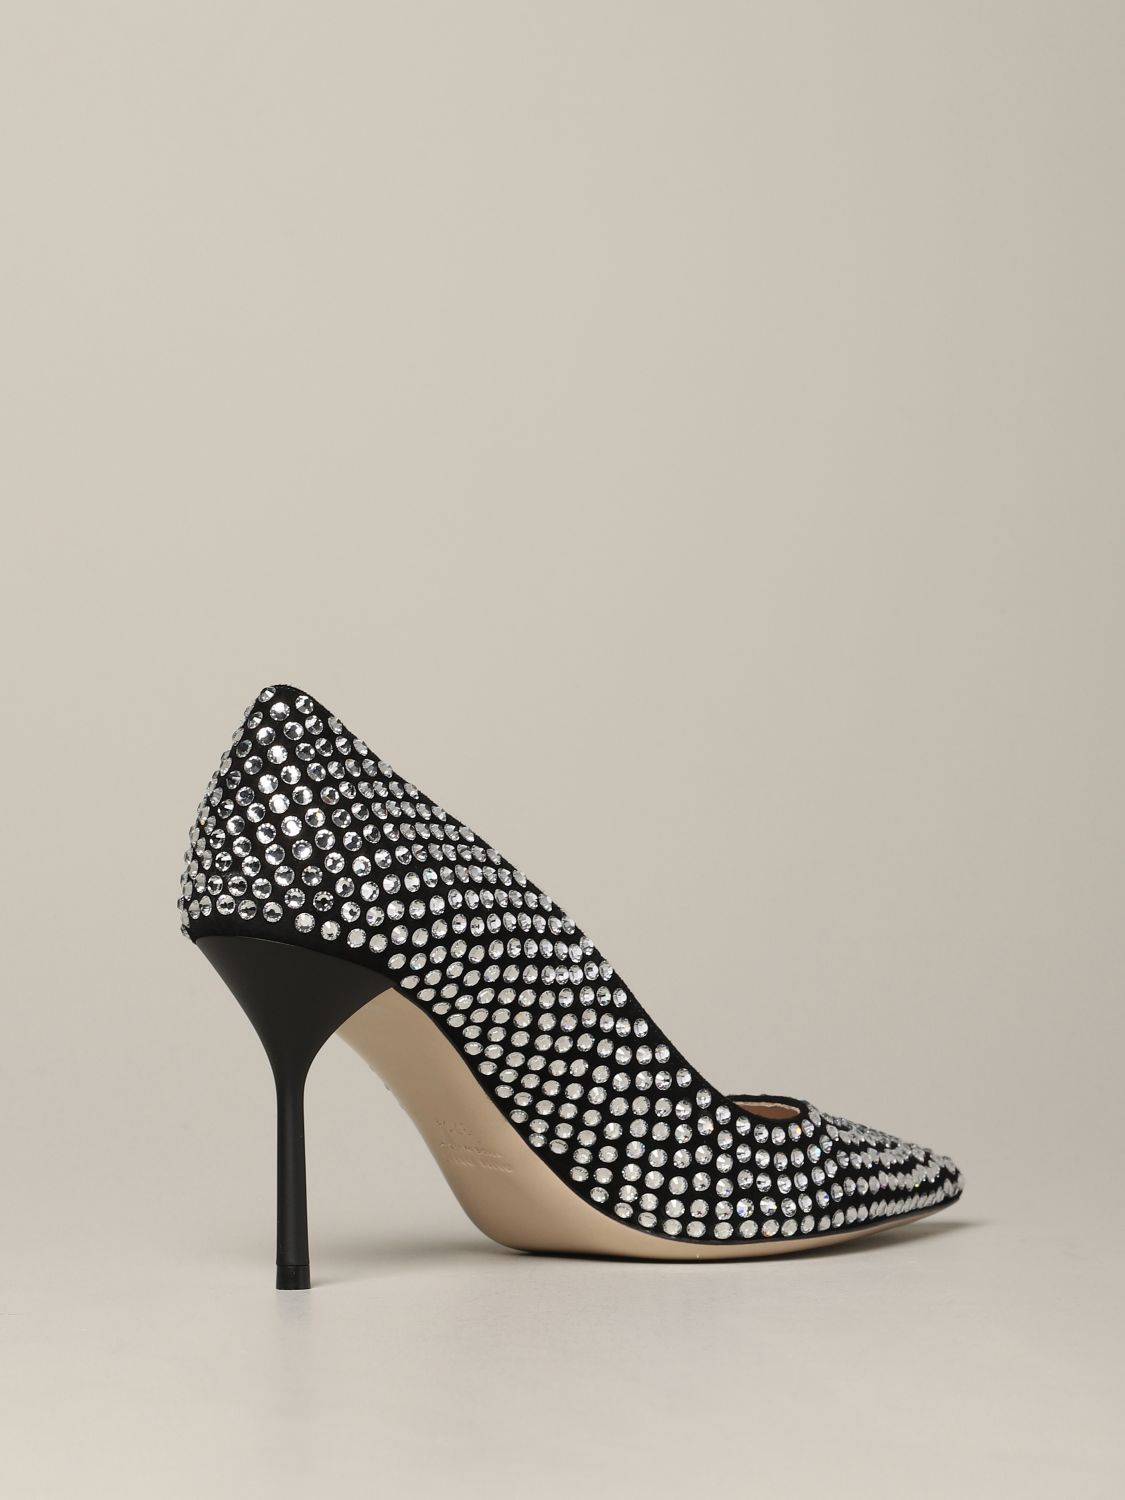 Miu Miu pumps with all-over rhinestones black 5